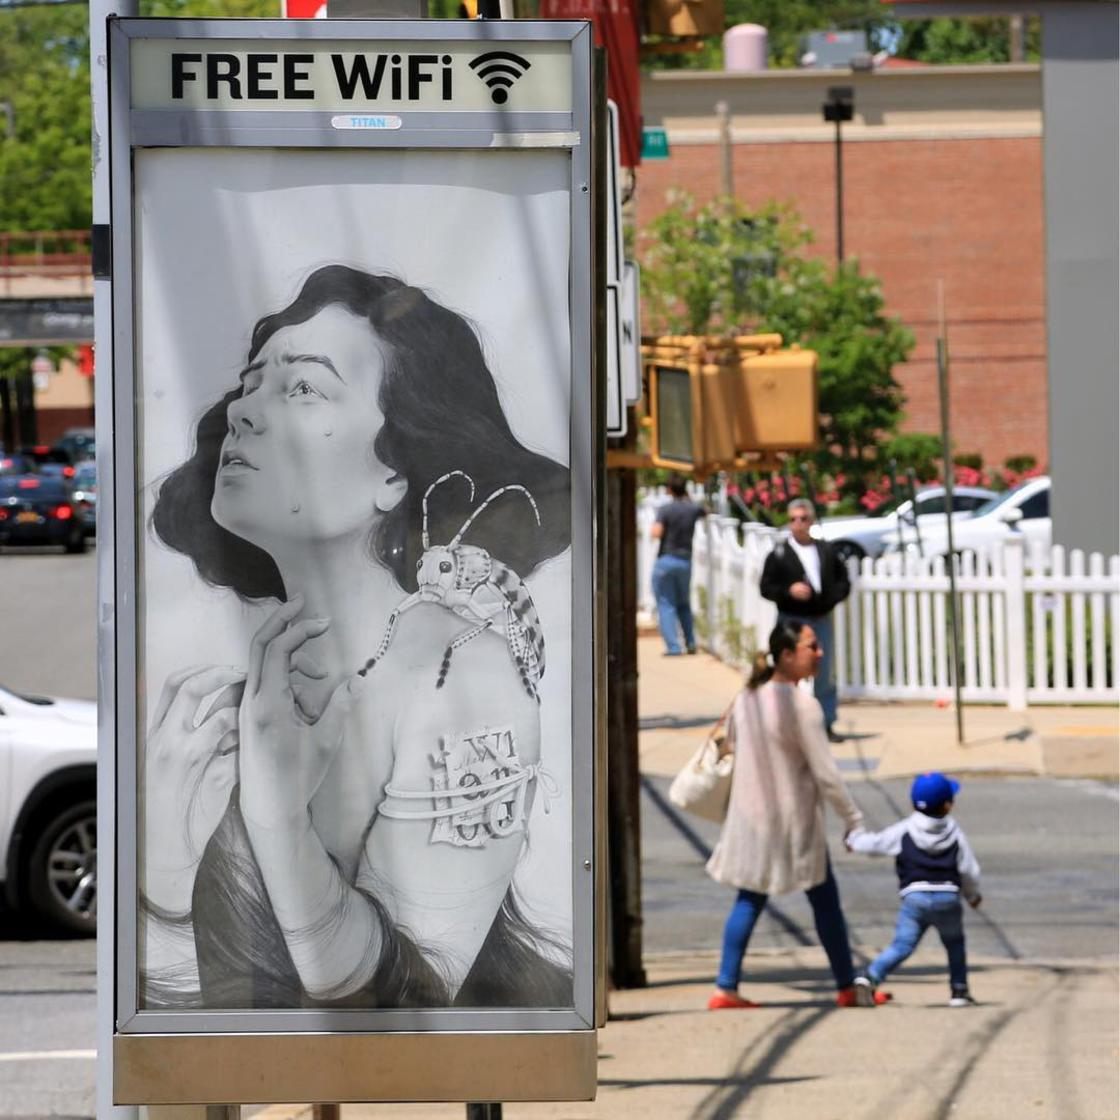 Art in Ad Places – When art invades advertising spaces